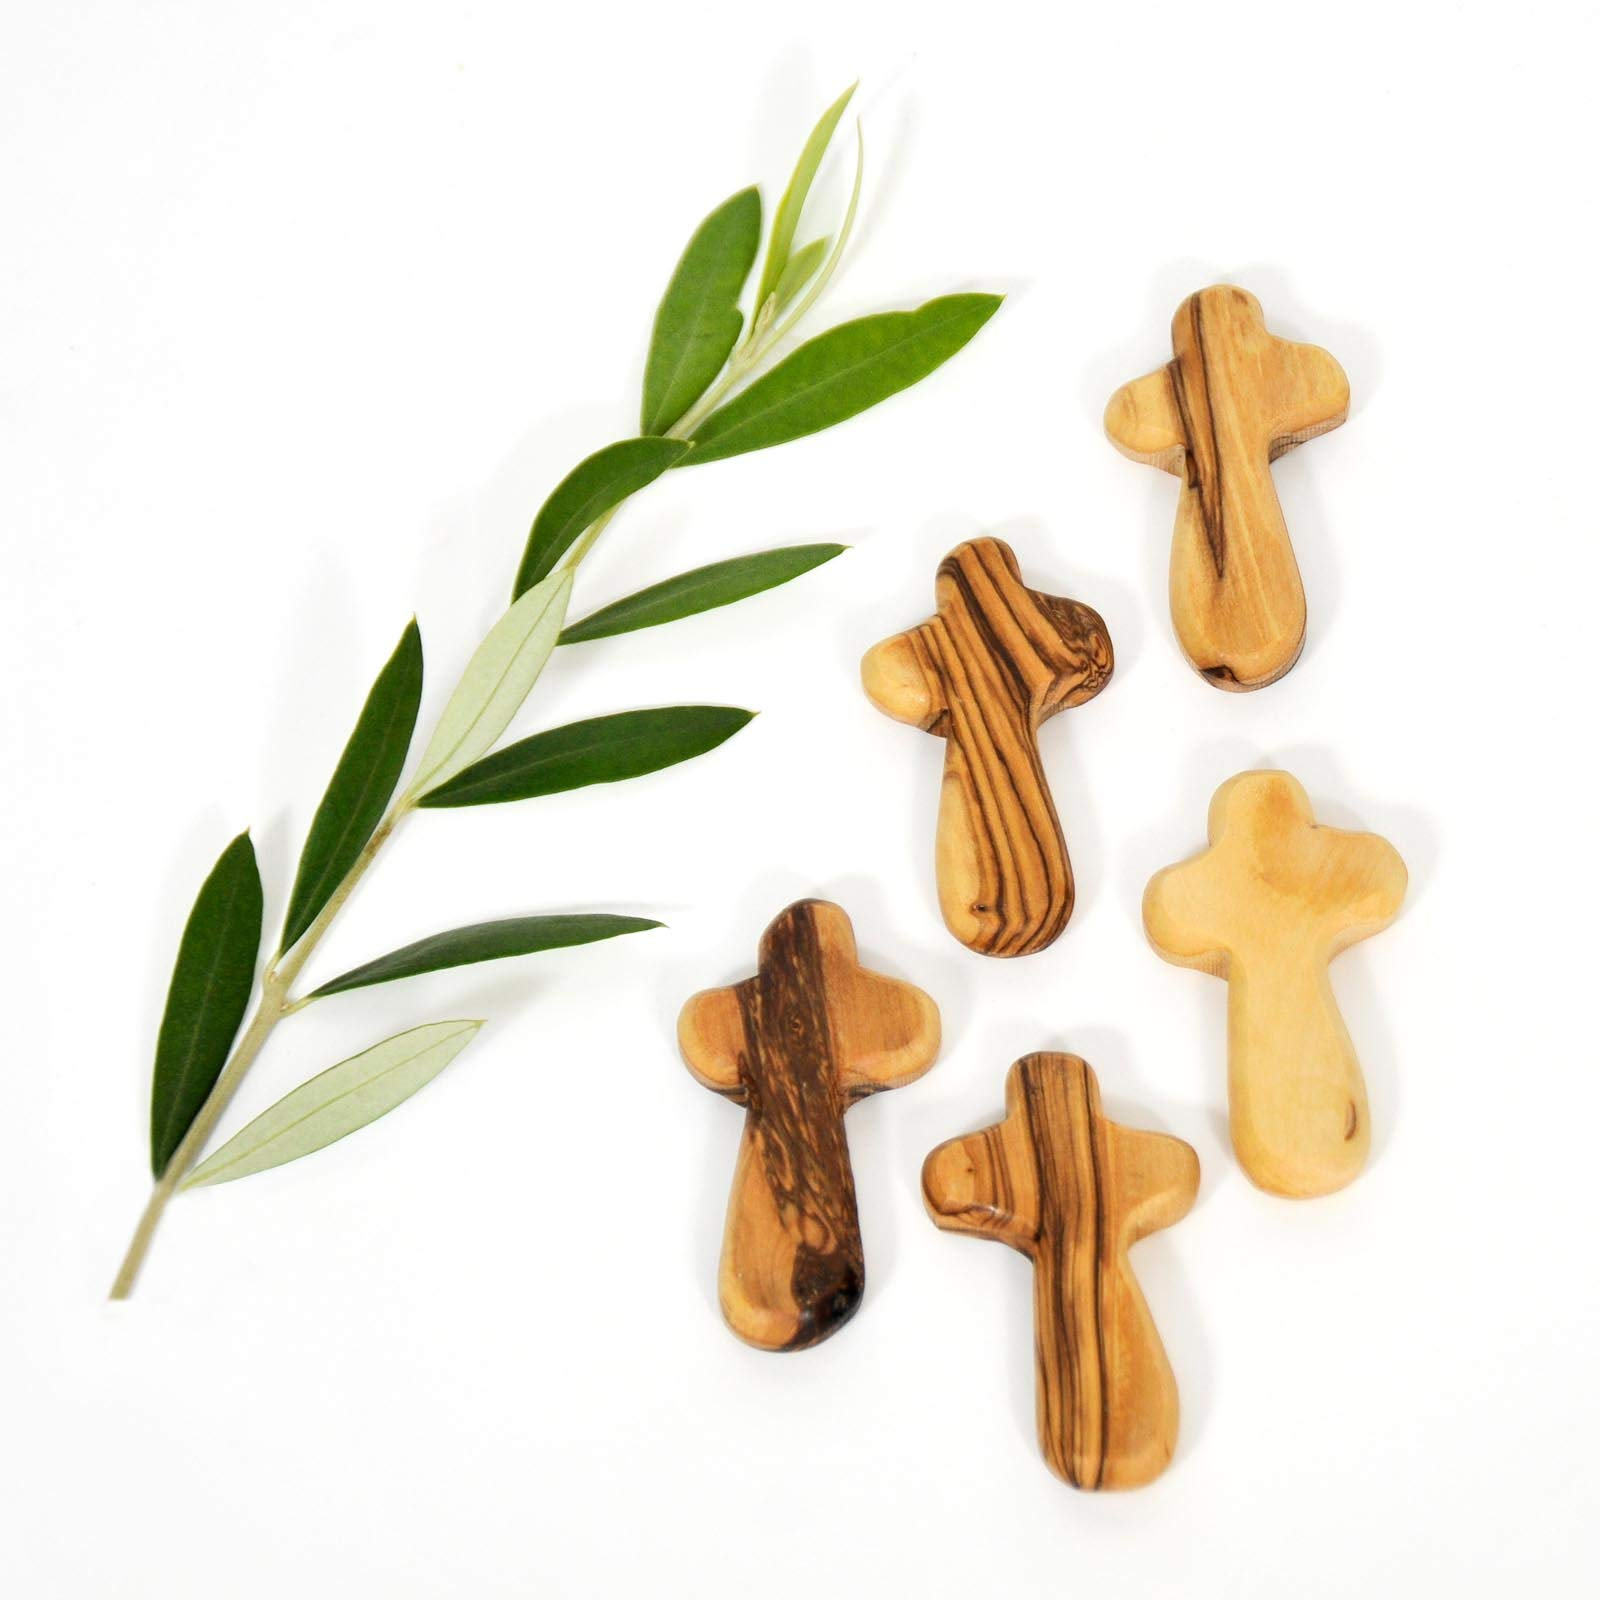 Olive Wood Small Pocket - Holding Crosses (25) by My Caring Cross (Image #3)